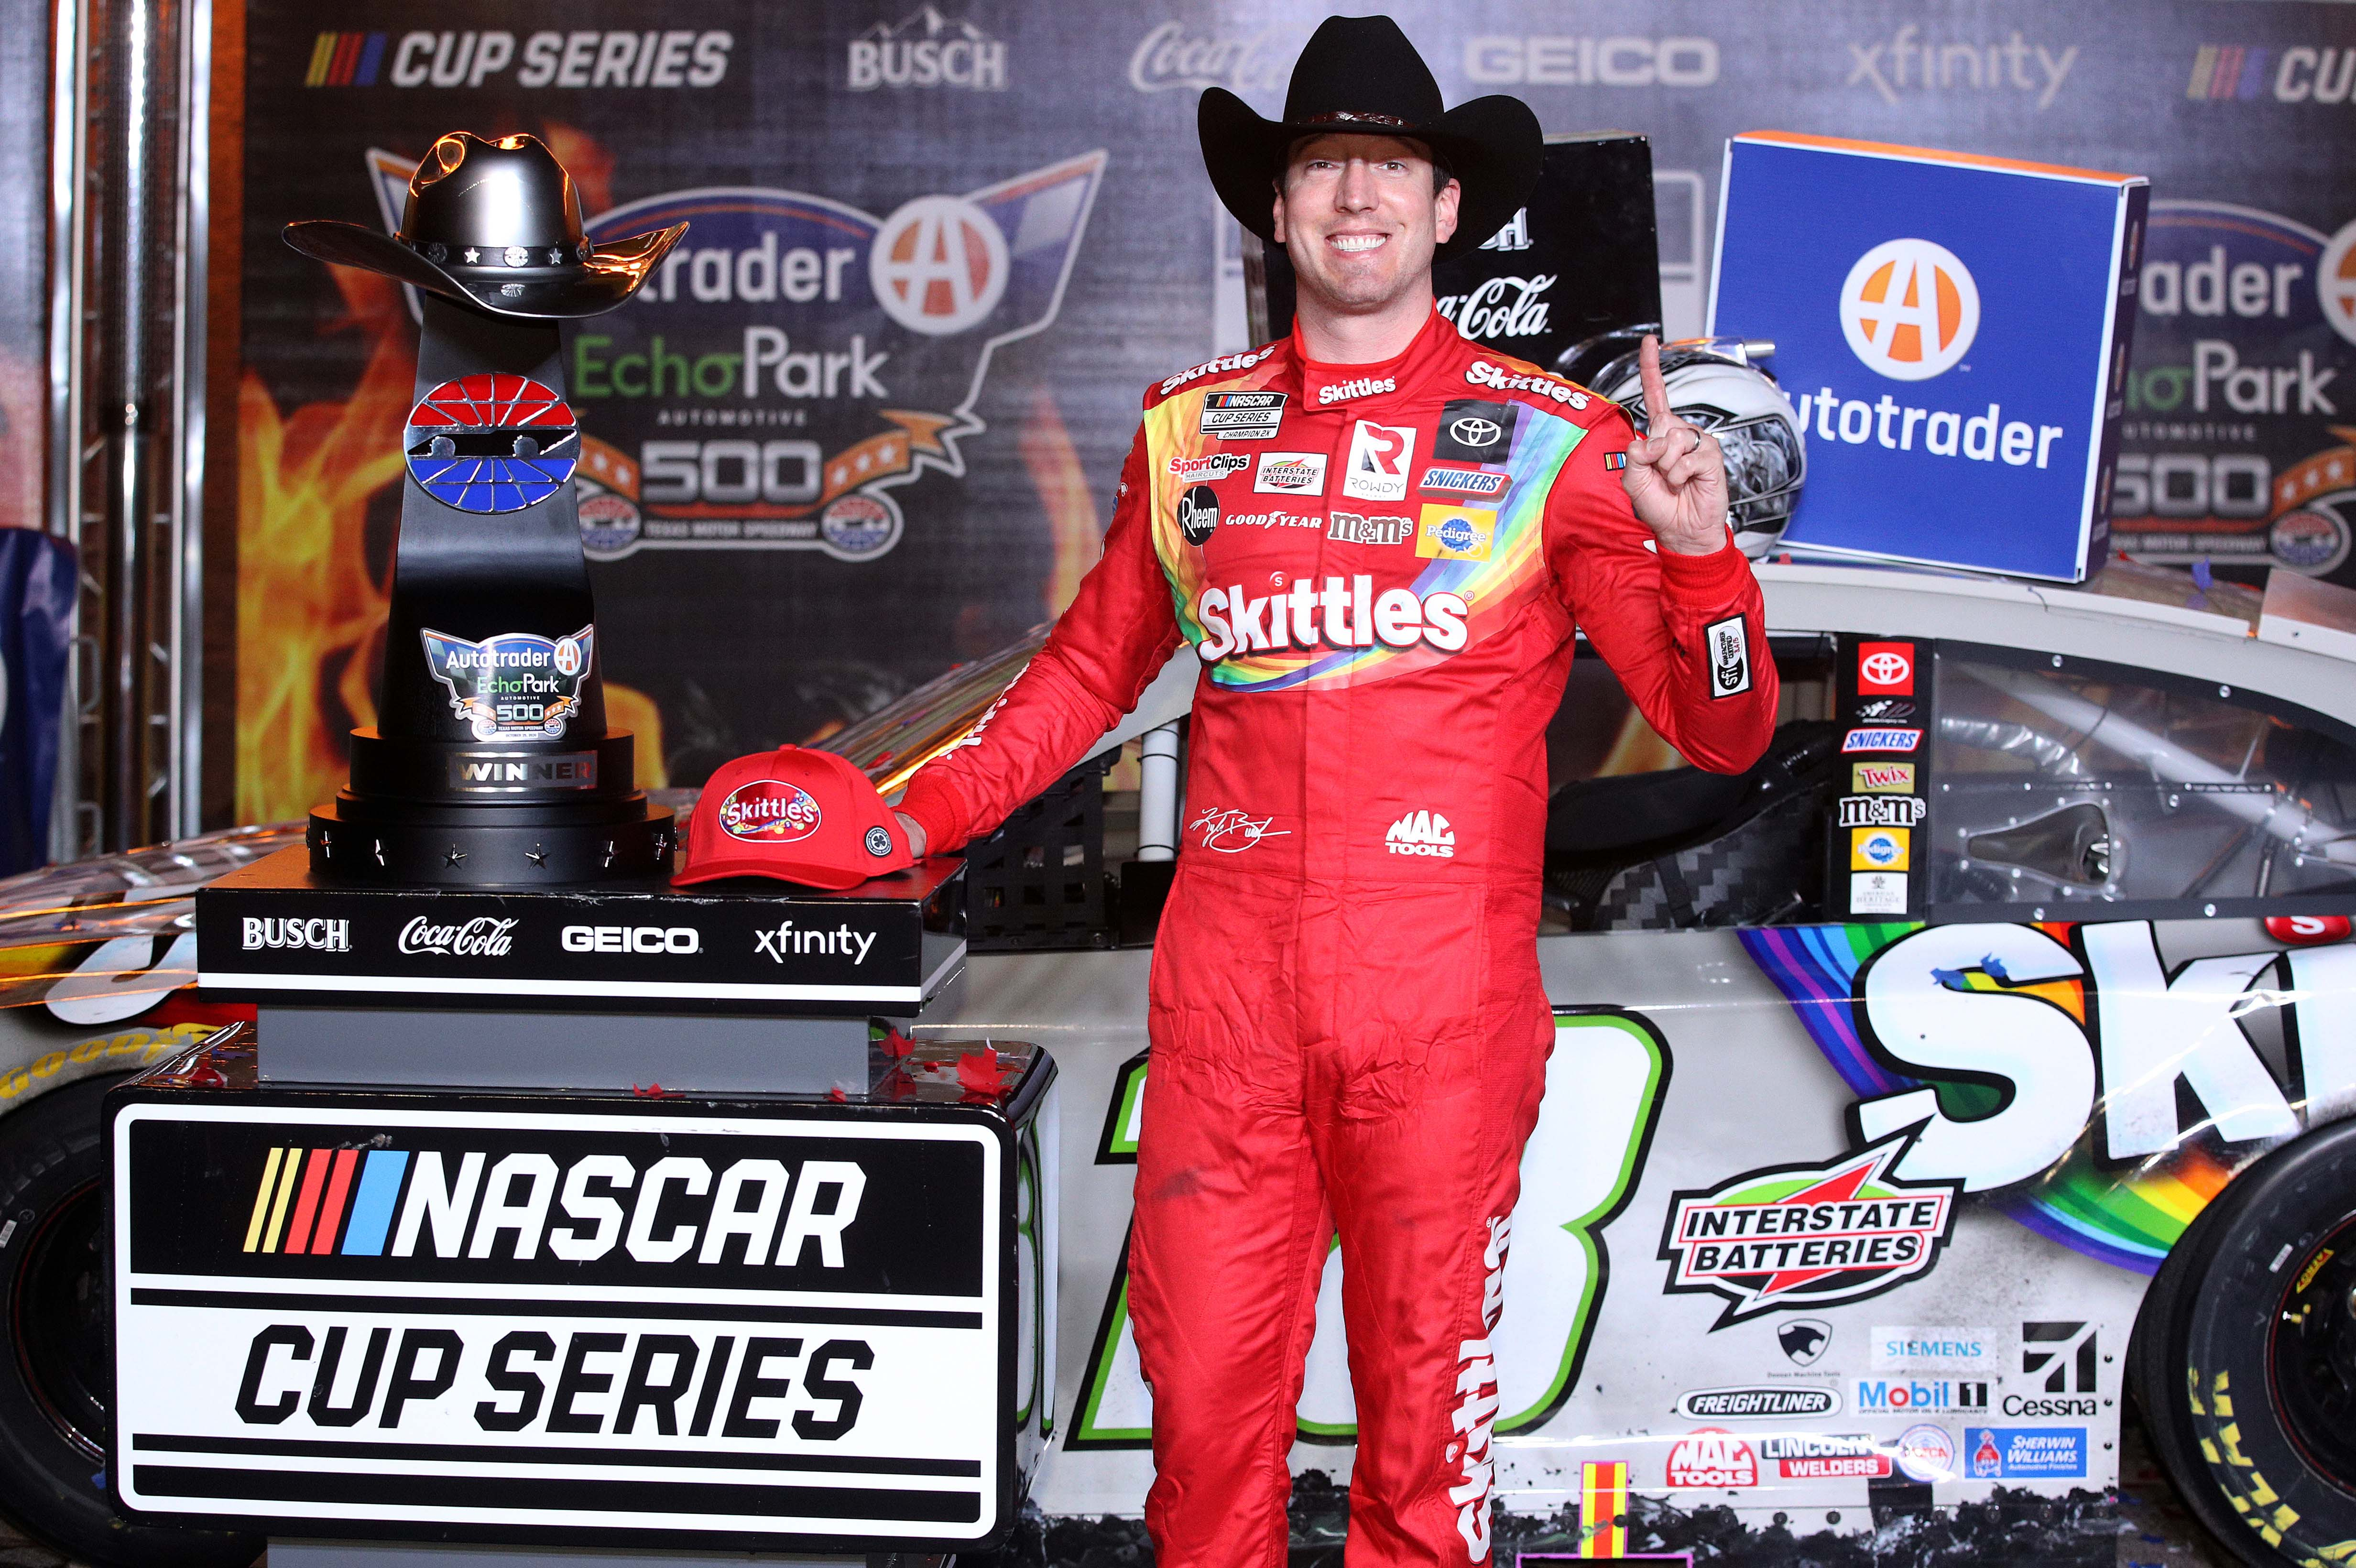 Kyle Busch in victory lane at Texas Motor Speedway - NASCAR Cup Series